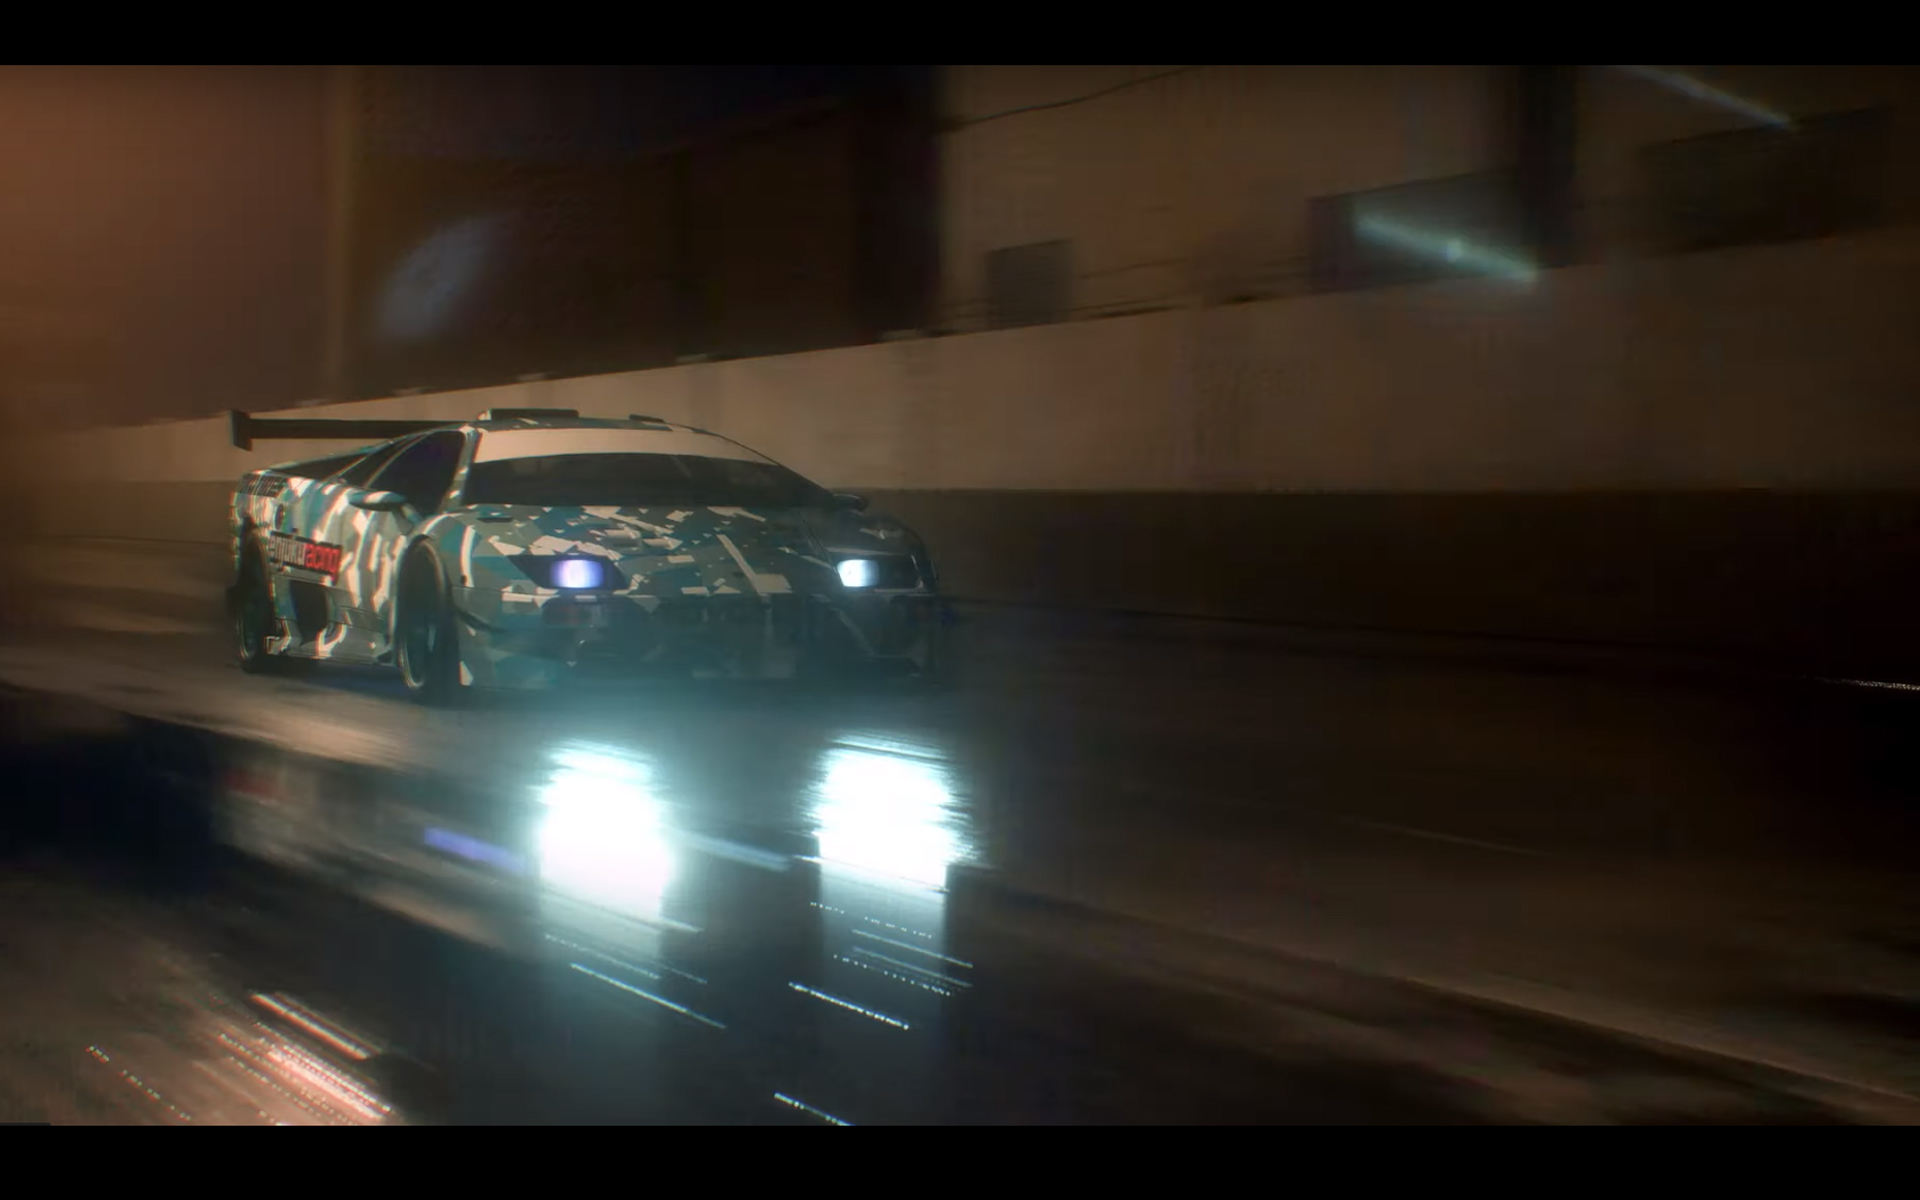 NFS-Heat-2019-screen-trailer-Lamborghini-speed-front-face